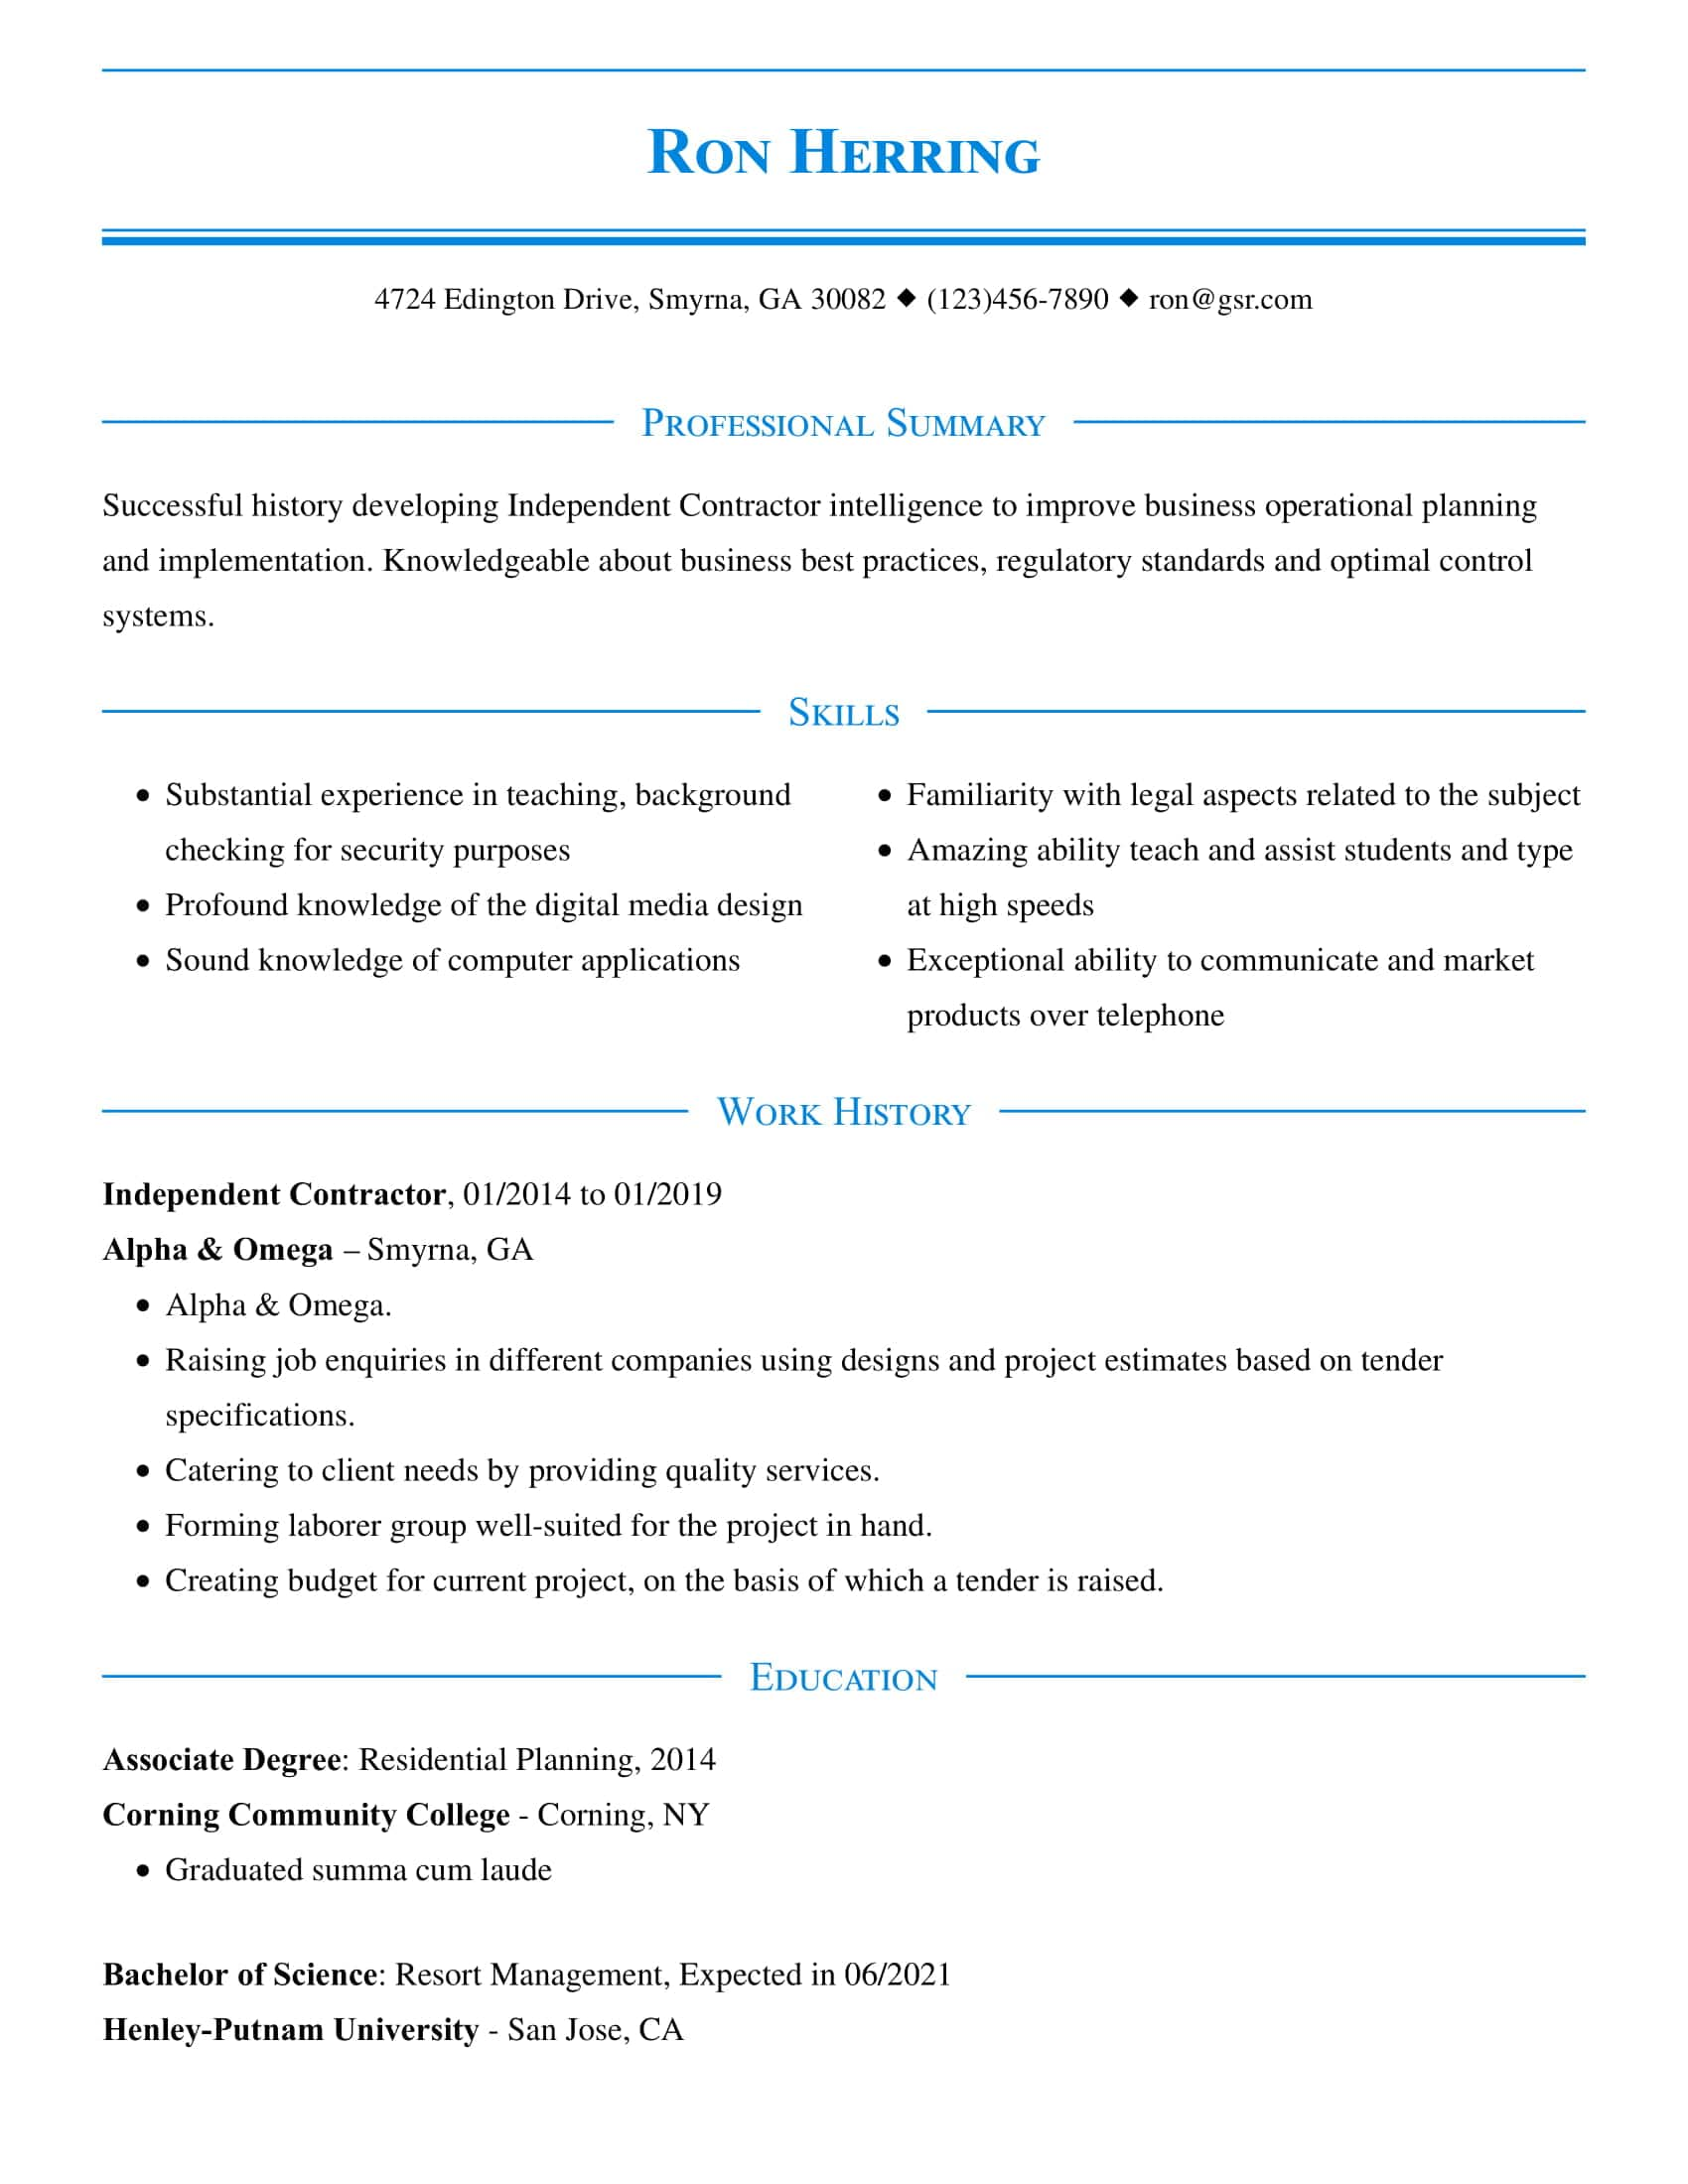 resume templates edit in minutes professional looking template refined blue concordia Resume Professional Looking Resume Template